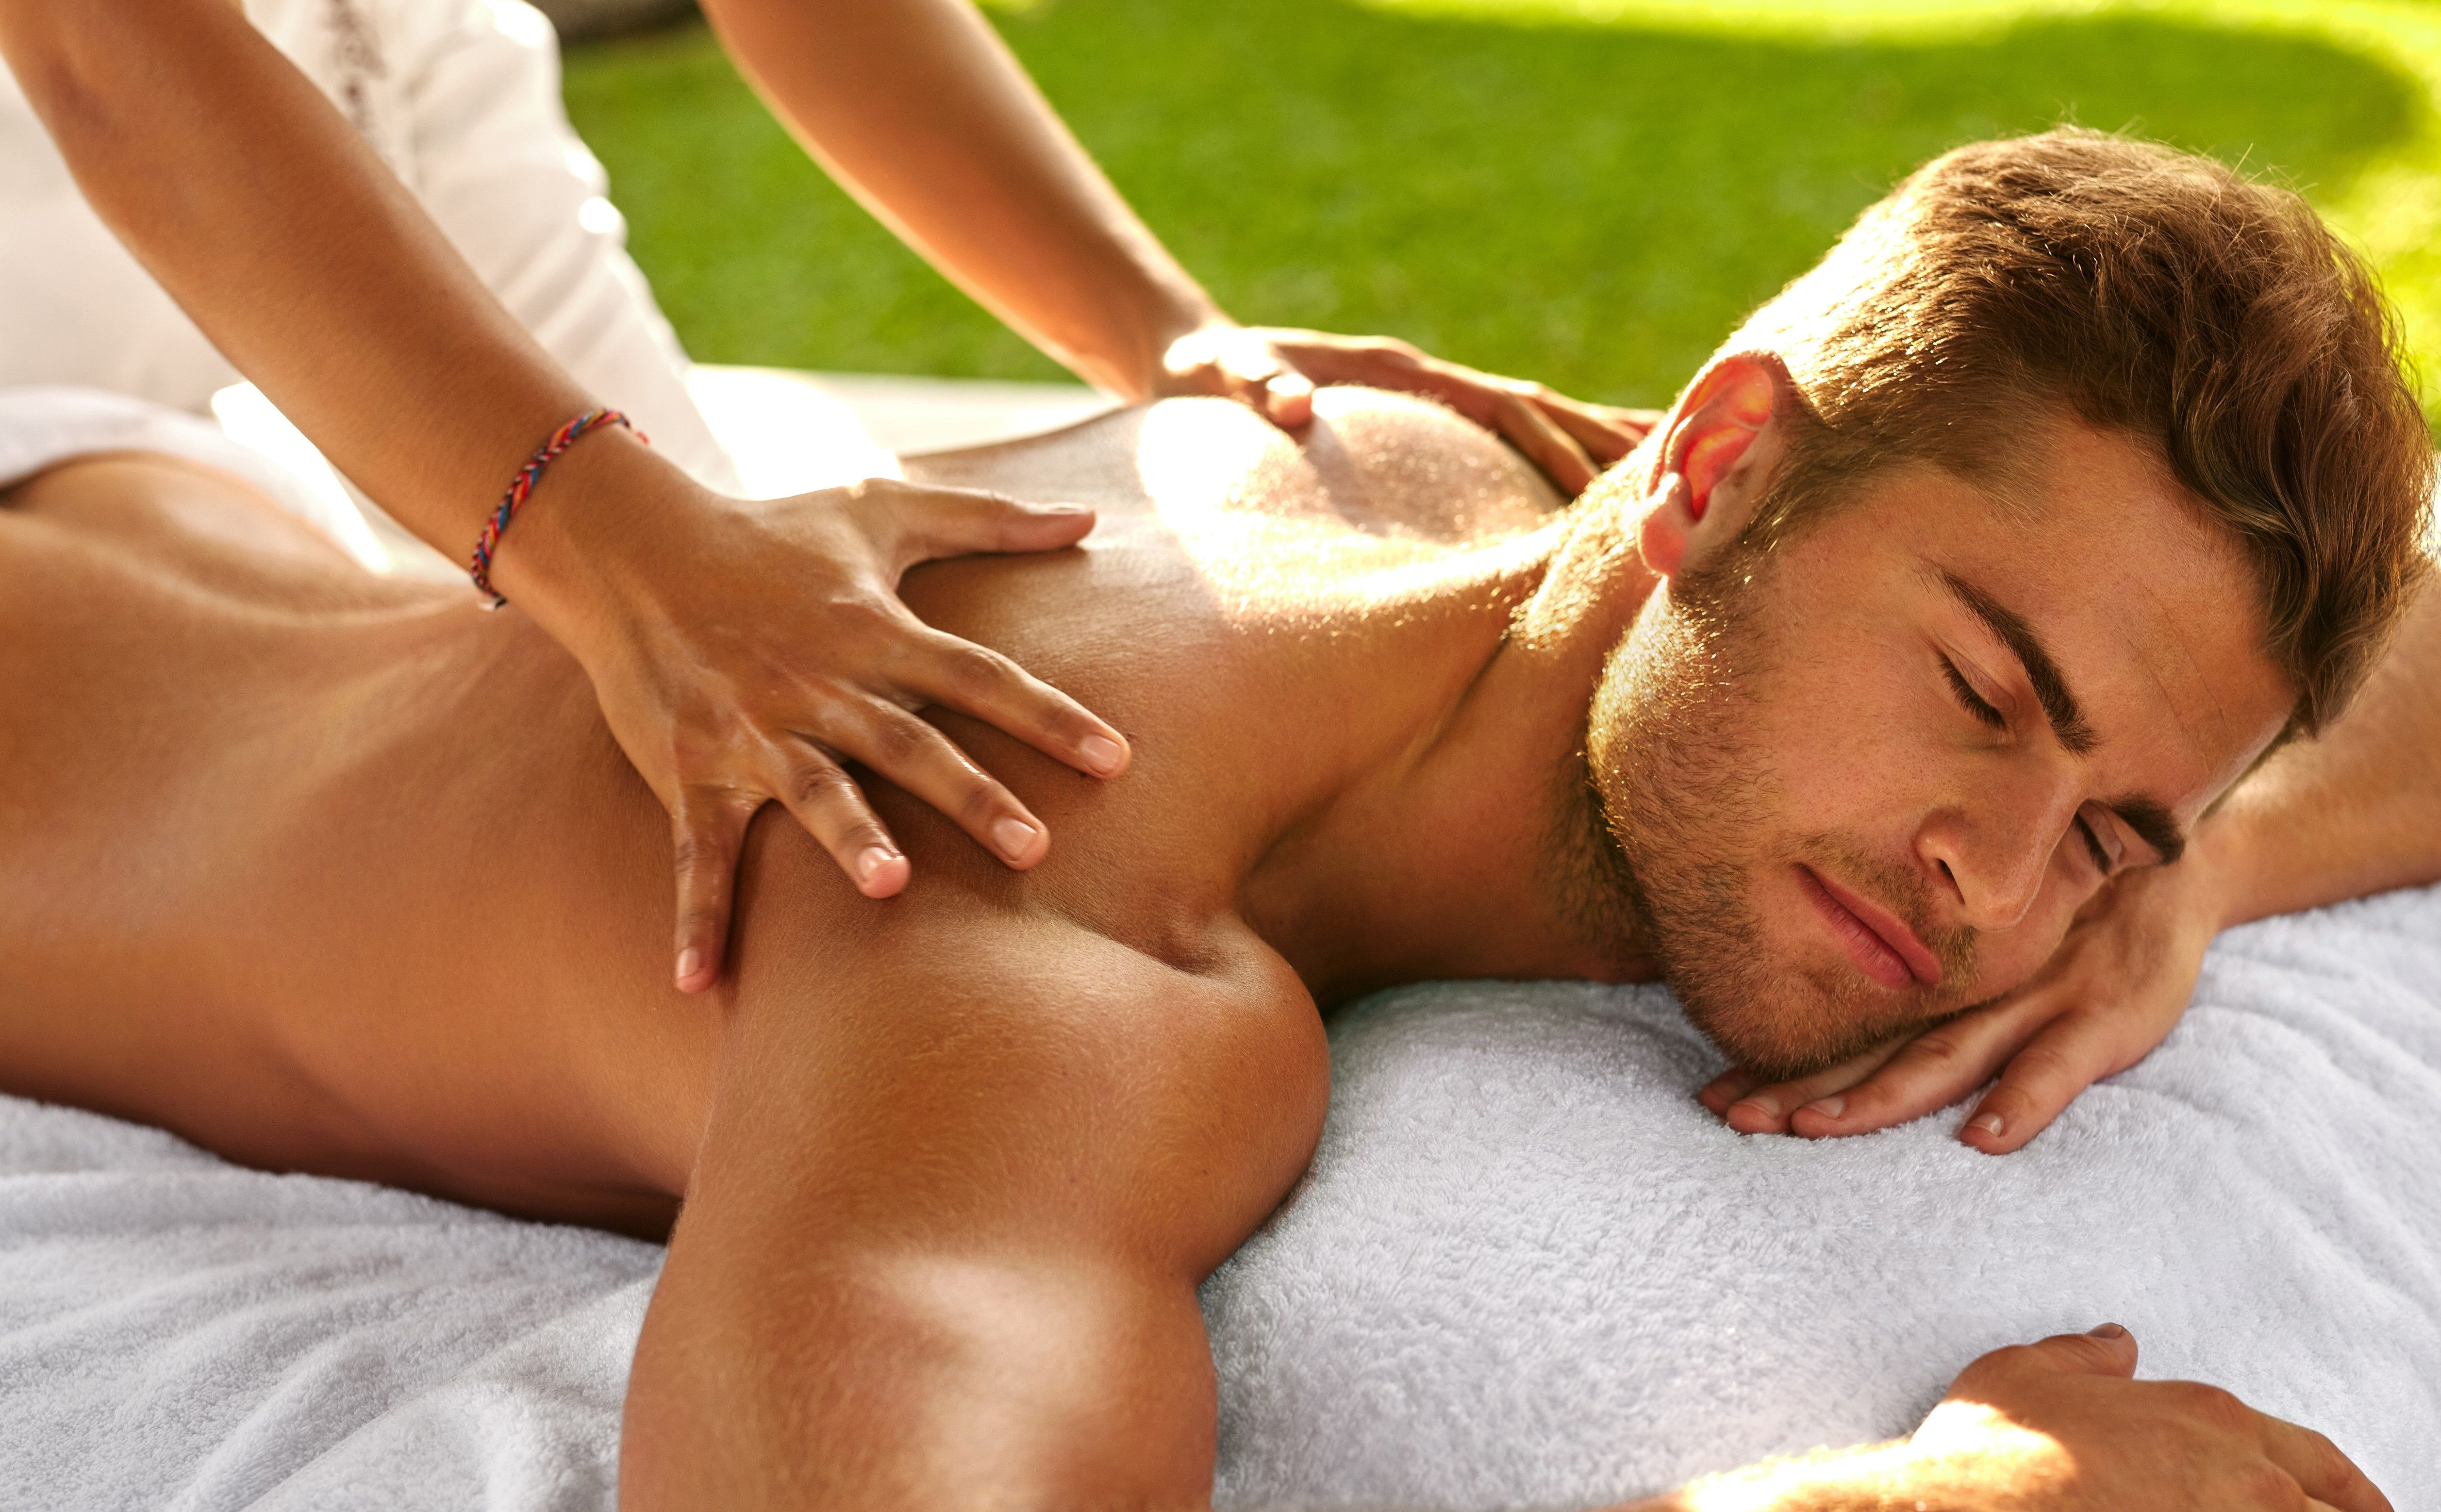 Naked straight gets massage by gay guy